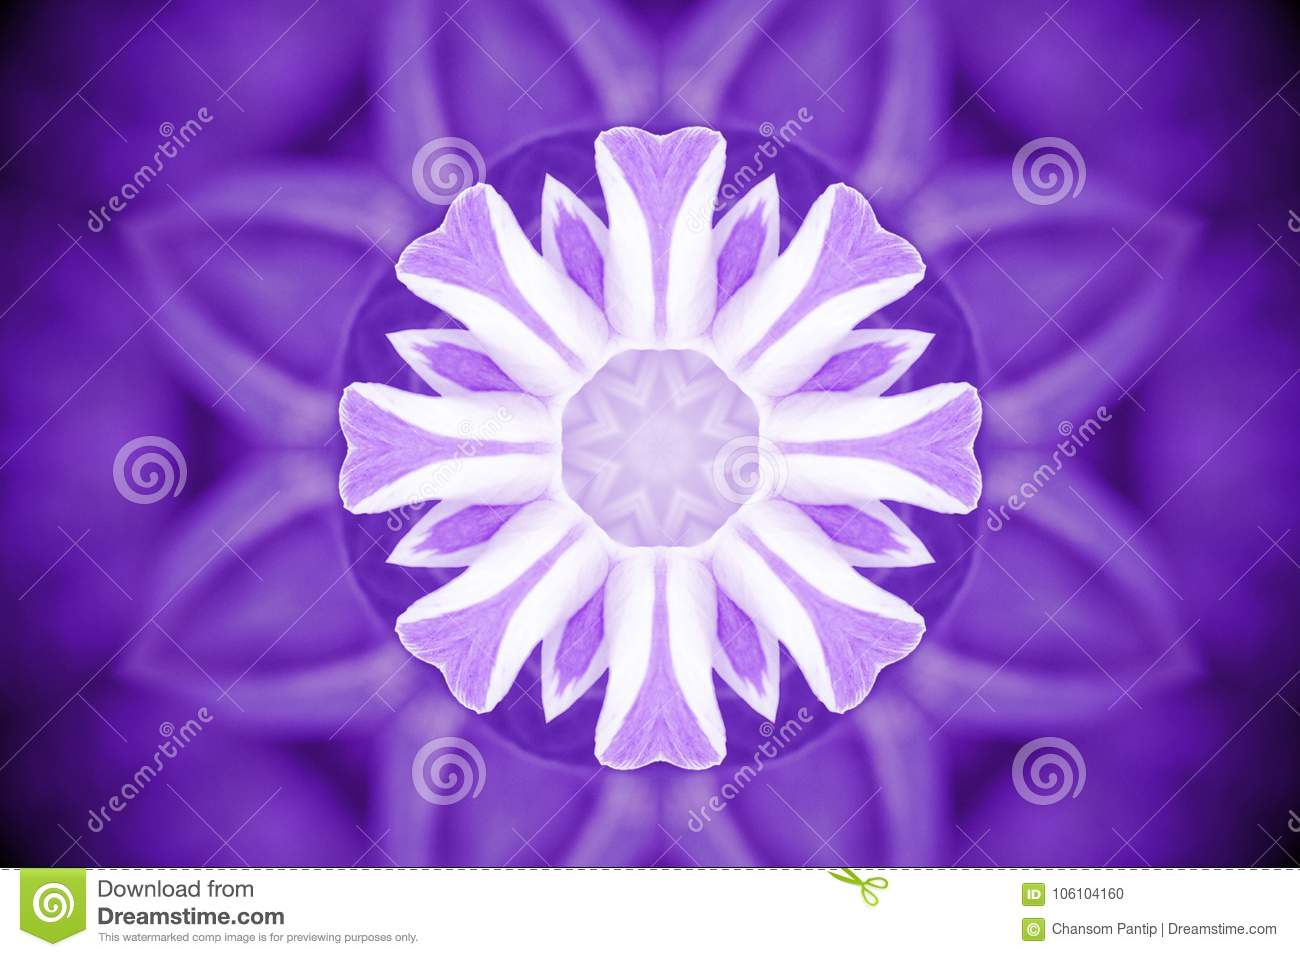 Violet wild flower petals with kaleidoscope effect, abstract col